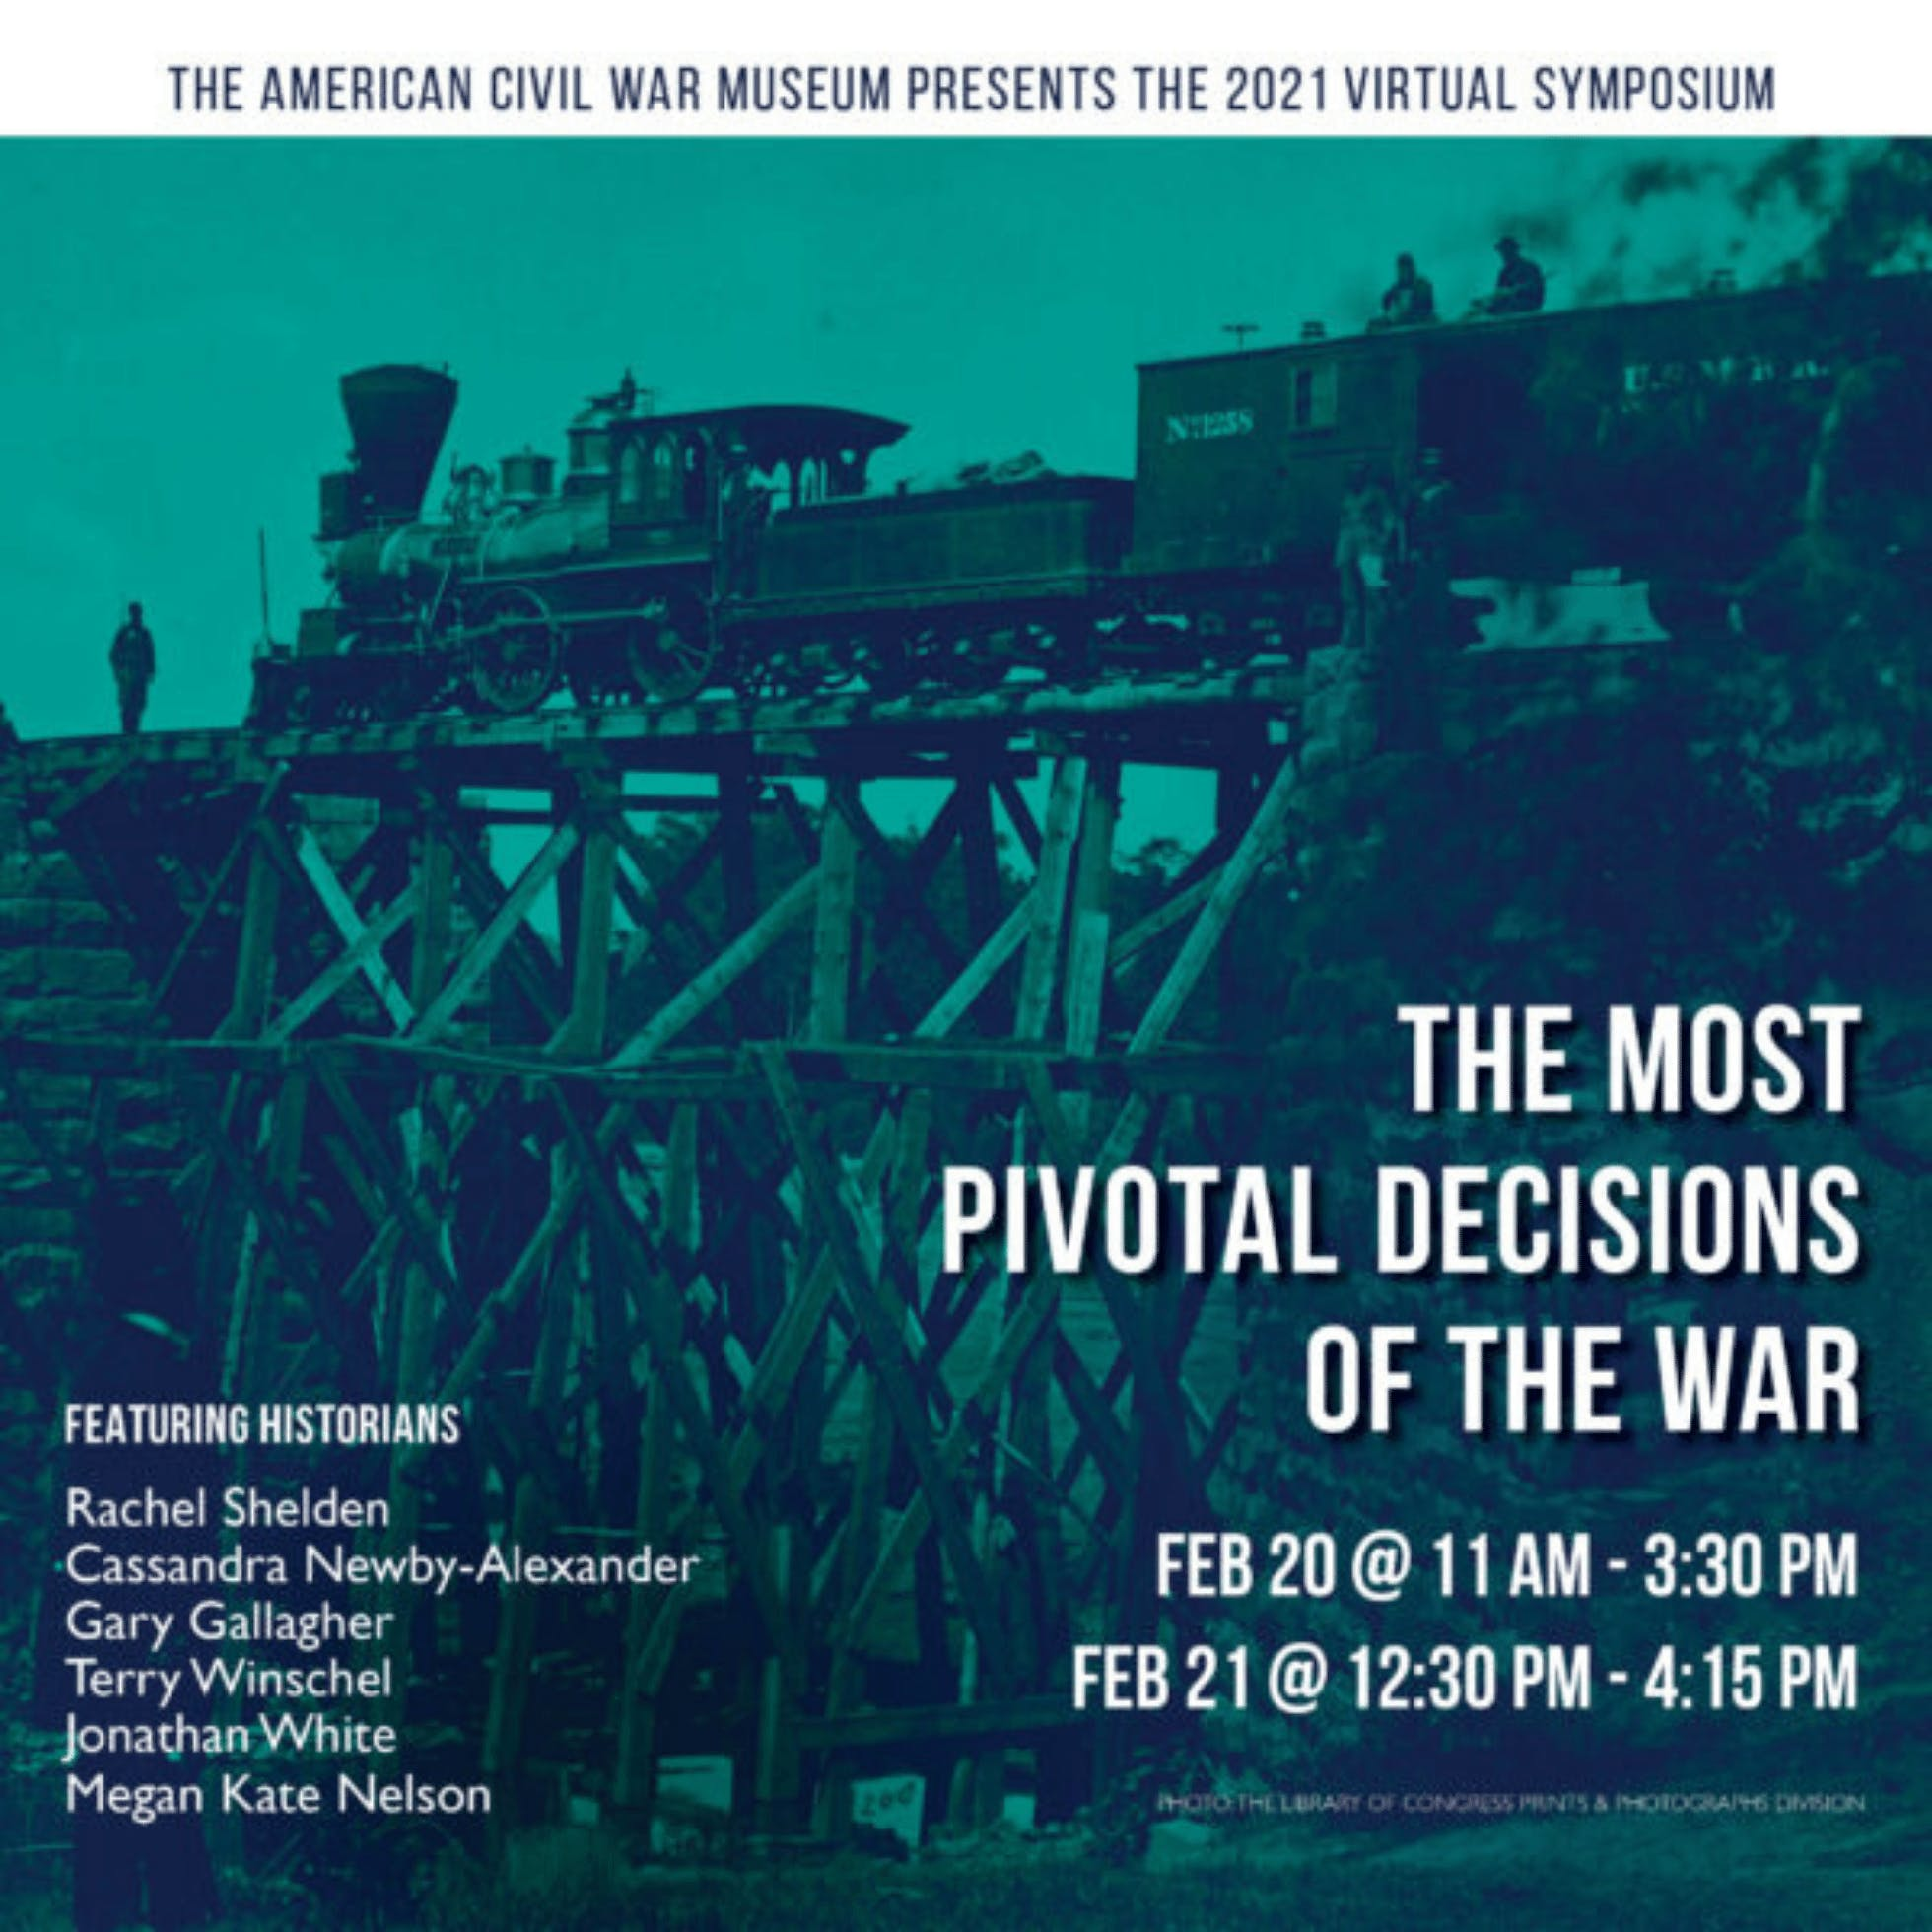 2021 Symposium: The Most Pivotal Decisions of the War